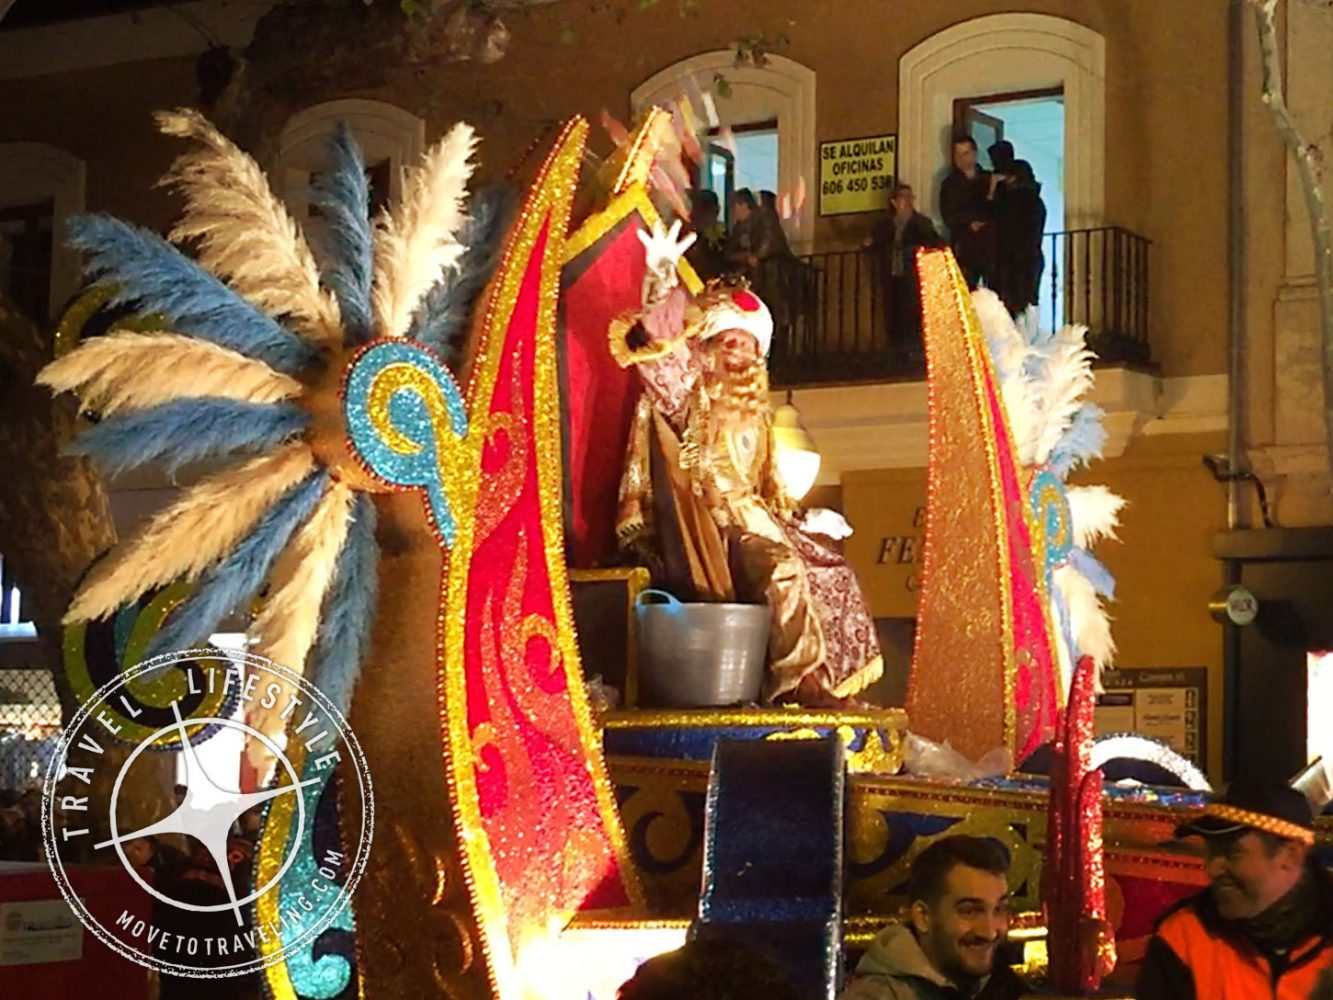 The Holidays Continue with Three Kings Day in Spain